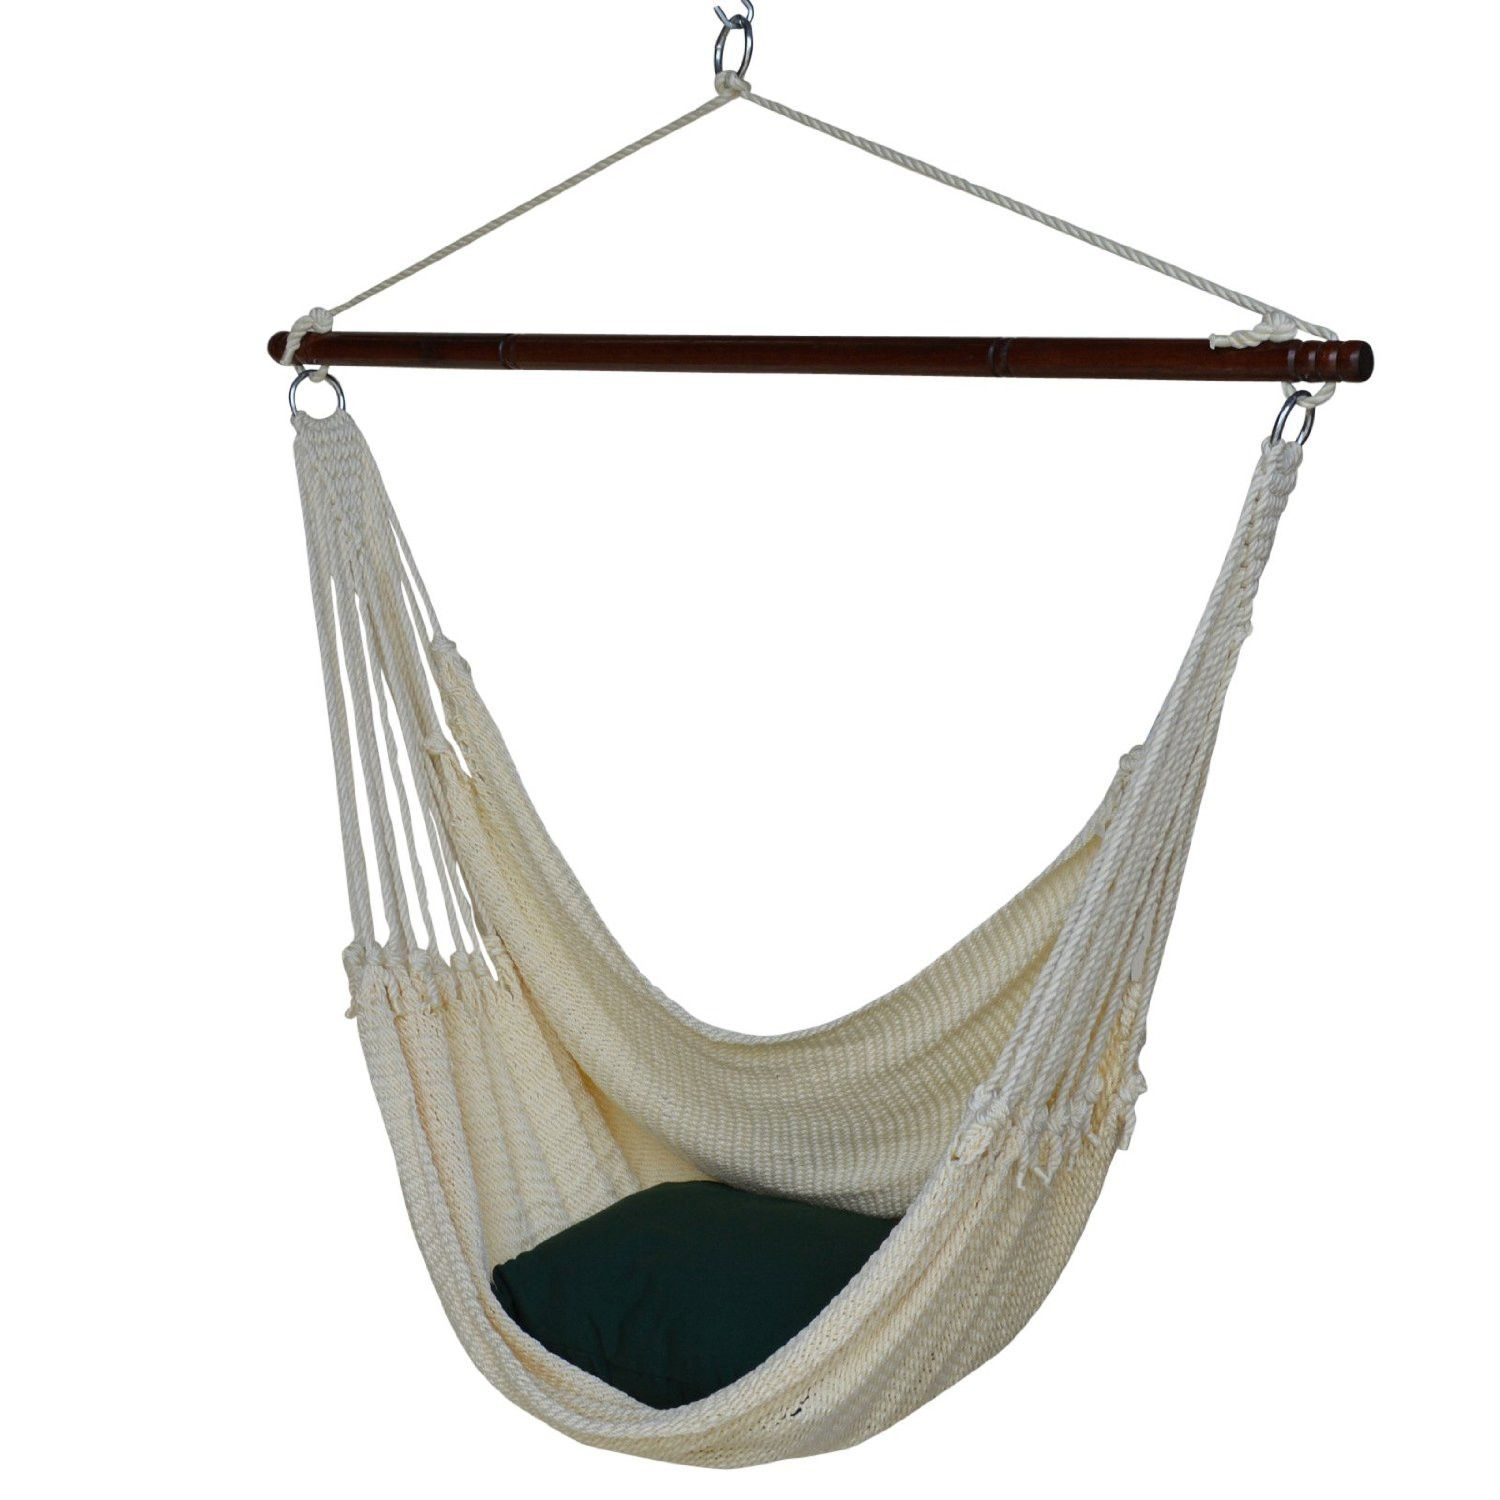 Shop Wayfair for All Hammocks to match every style and